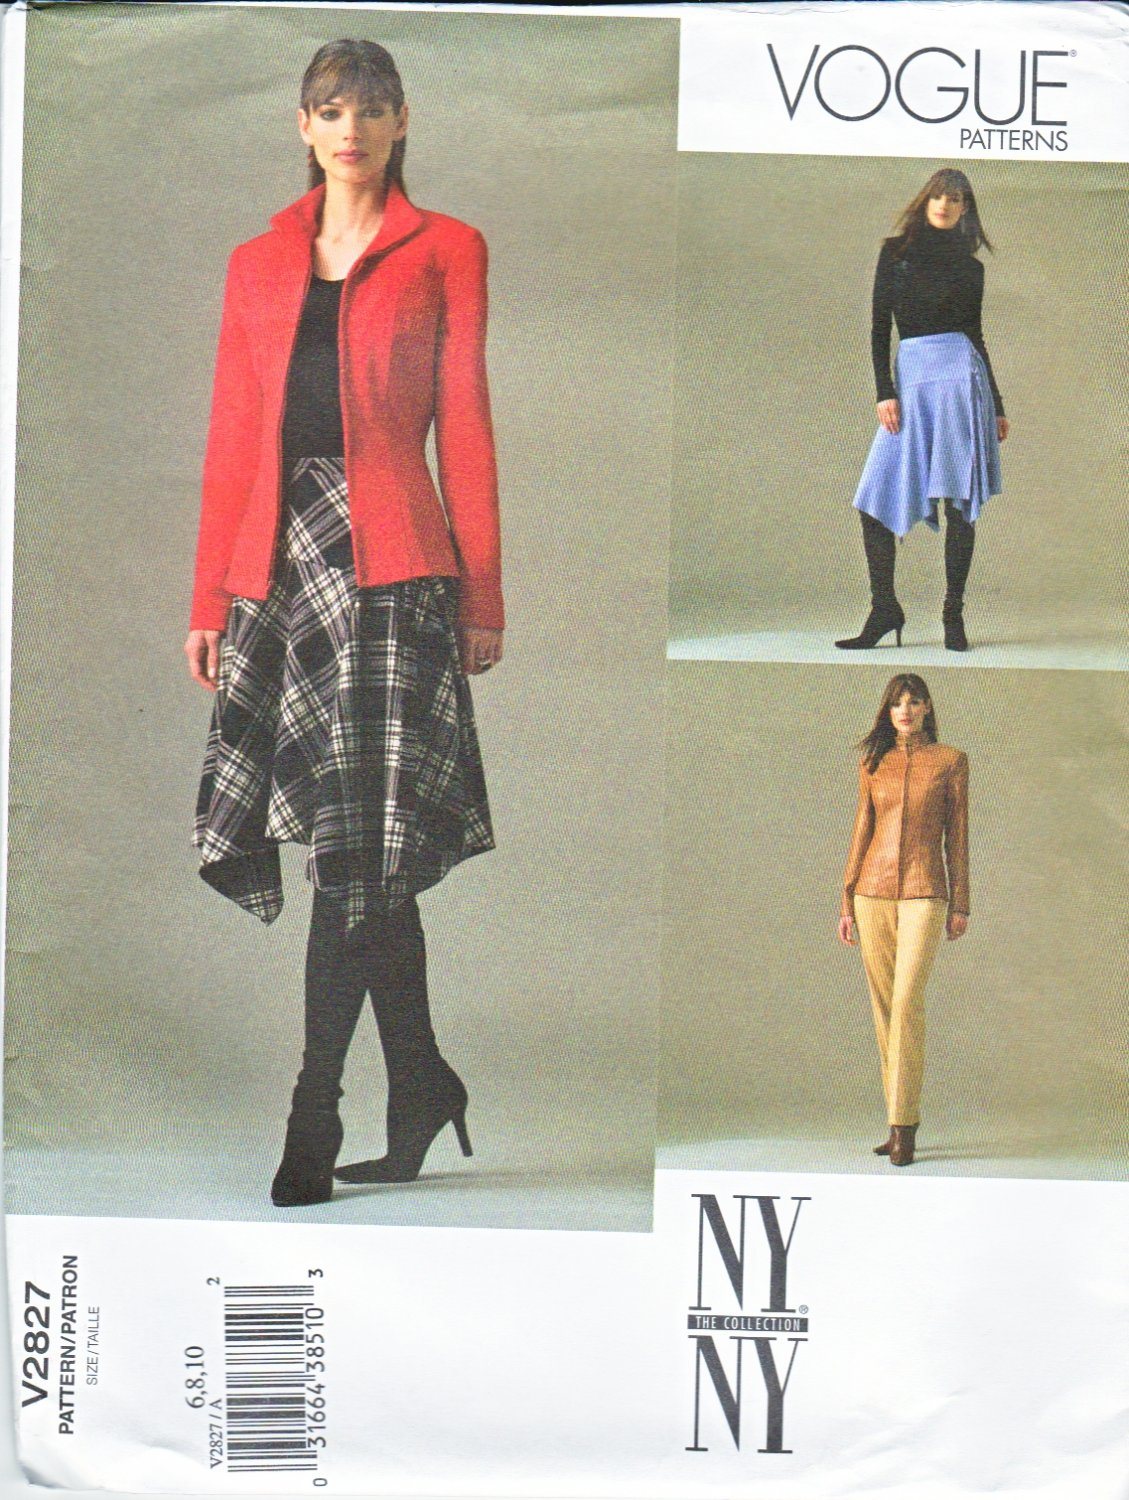 Vogue Sewing Pattern 2827 Misses Size 6-8-10 NY NY Jacket Wrap Skirt Pants